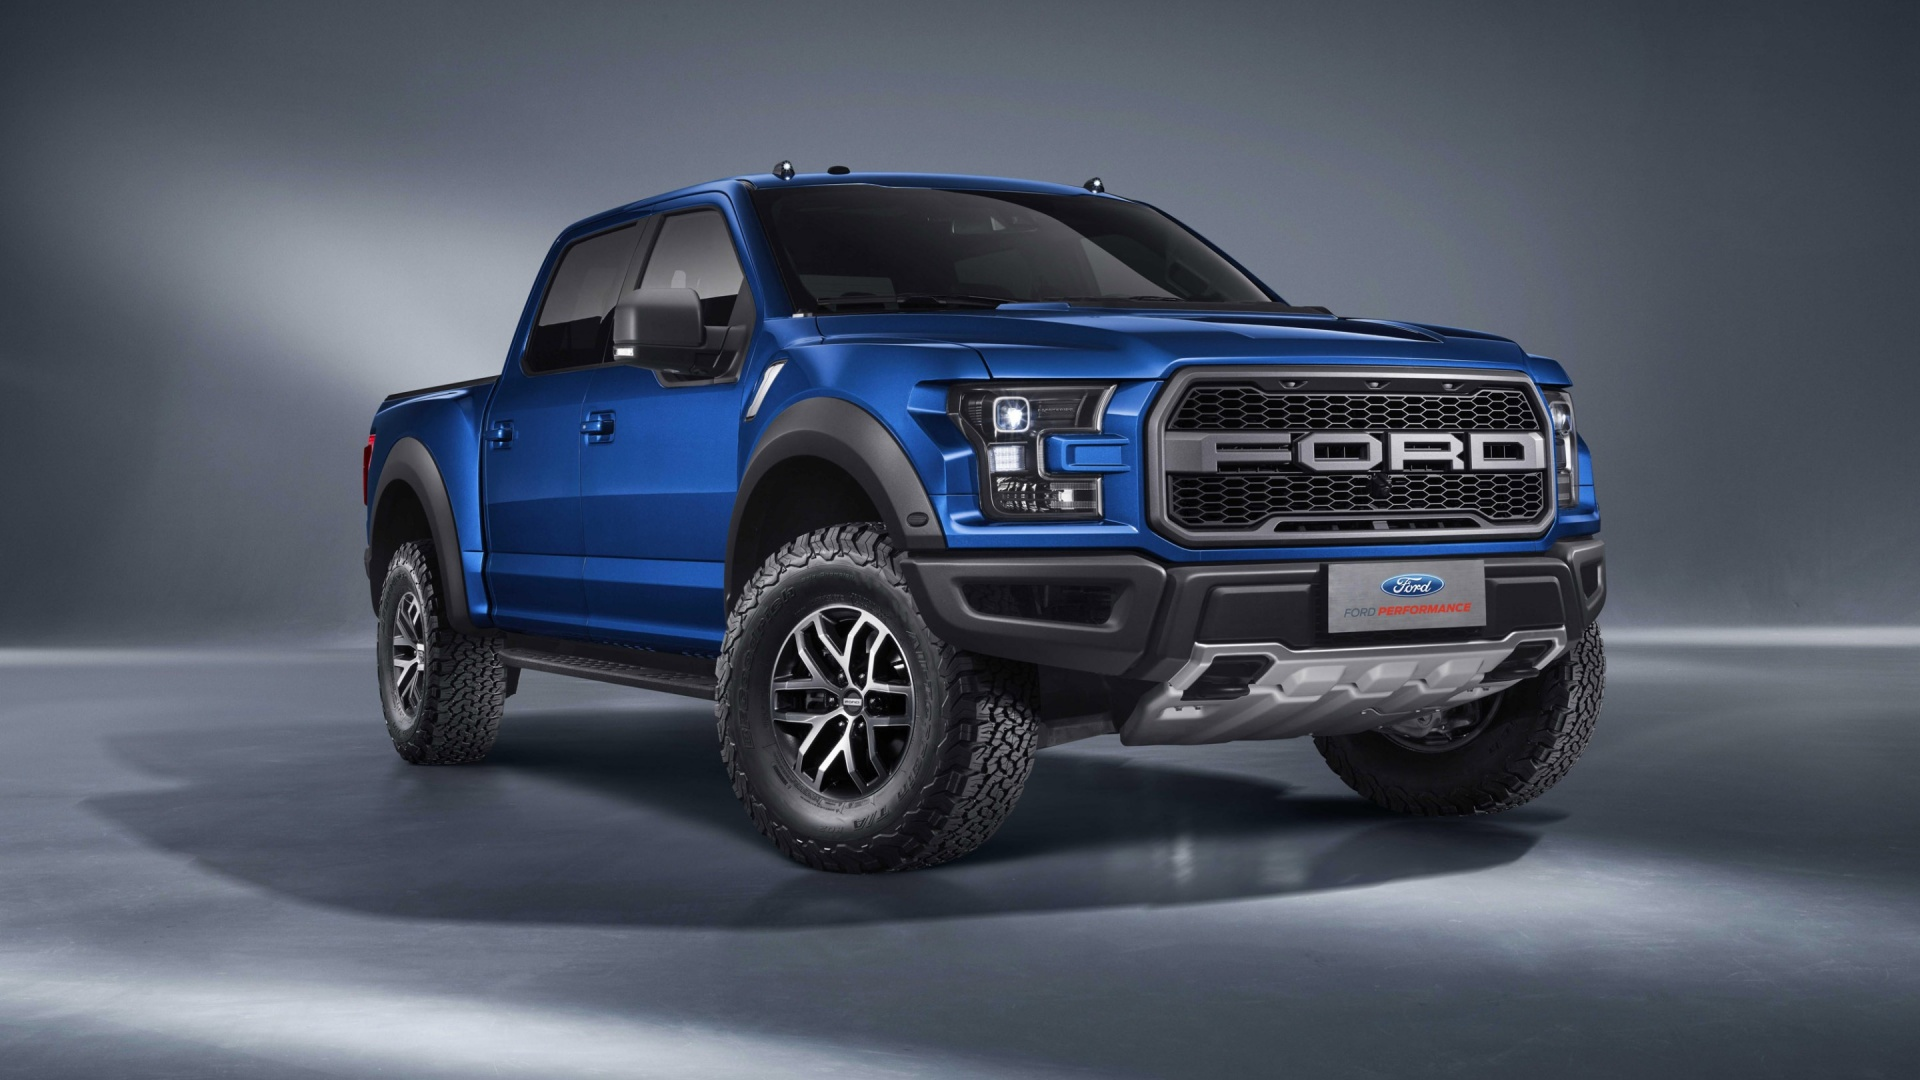 Ford-F-Raptor-SuperCrew-1920x1080-wallpaper-wpc9005083